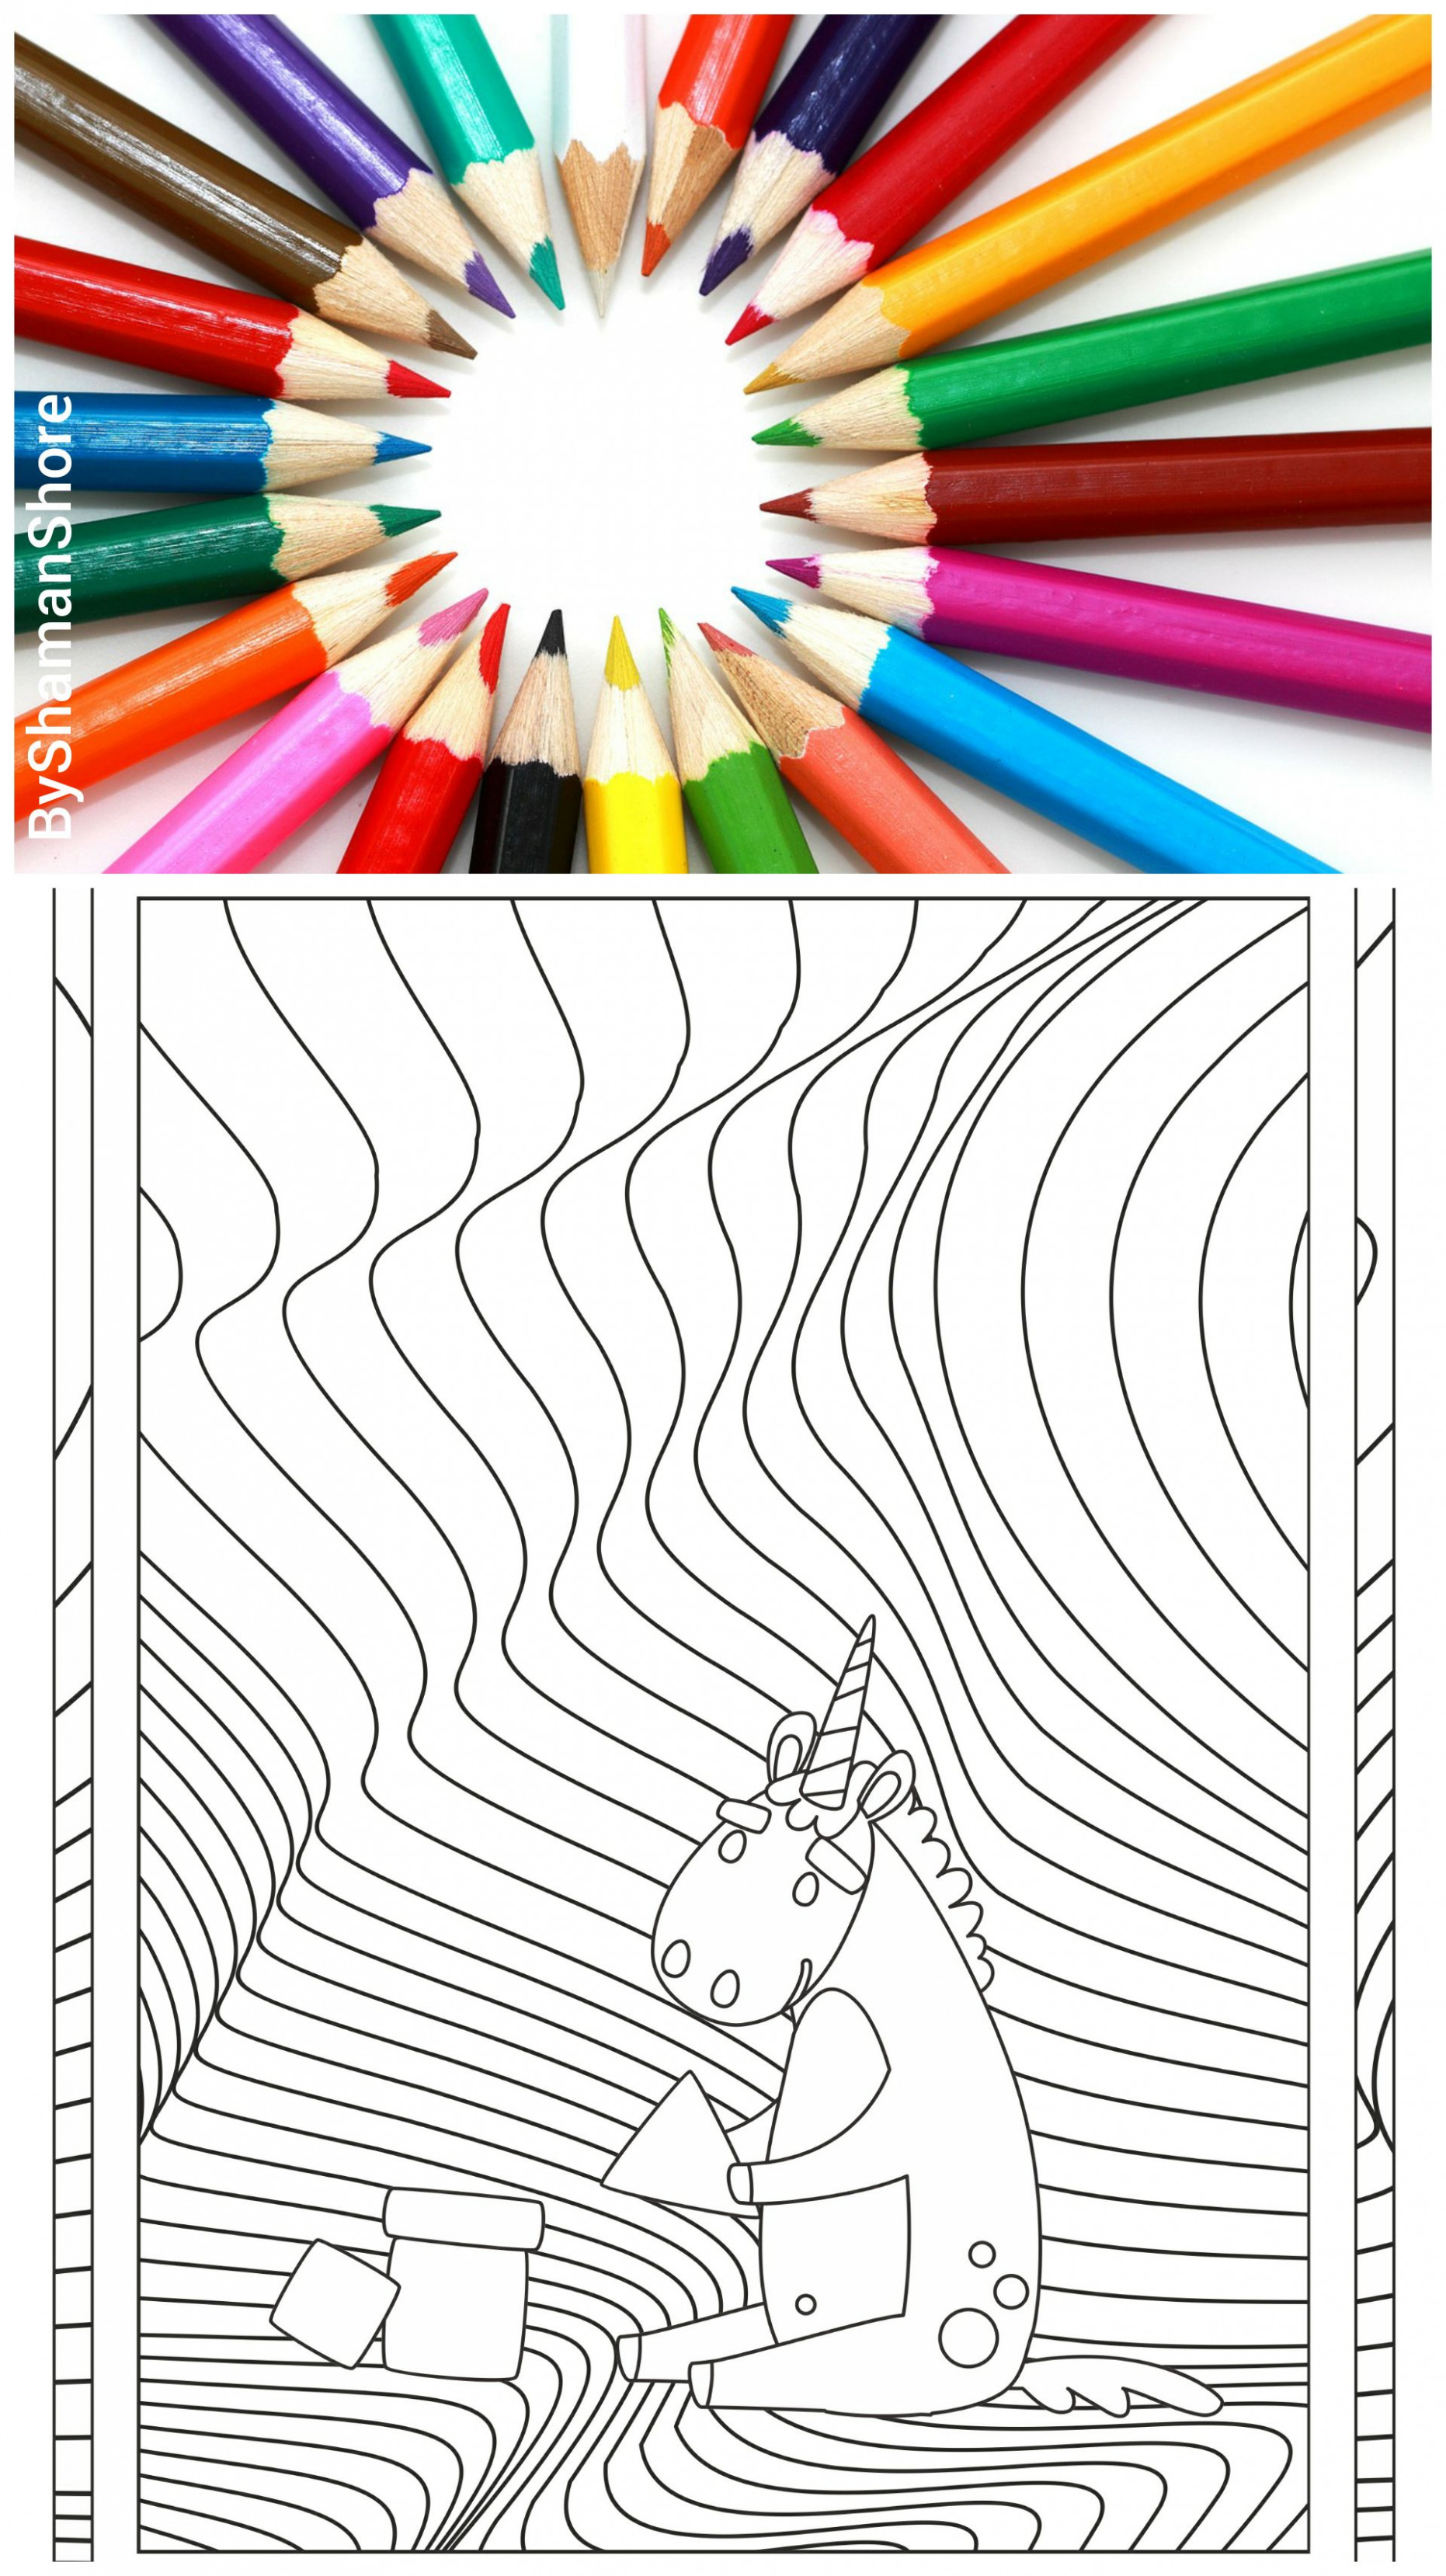 Digital Adult Coloring Book Pdf, 12 Unicorn Adult Coloring Pages ..